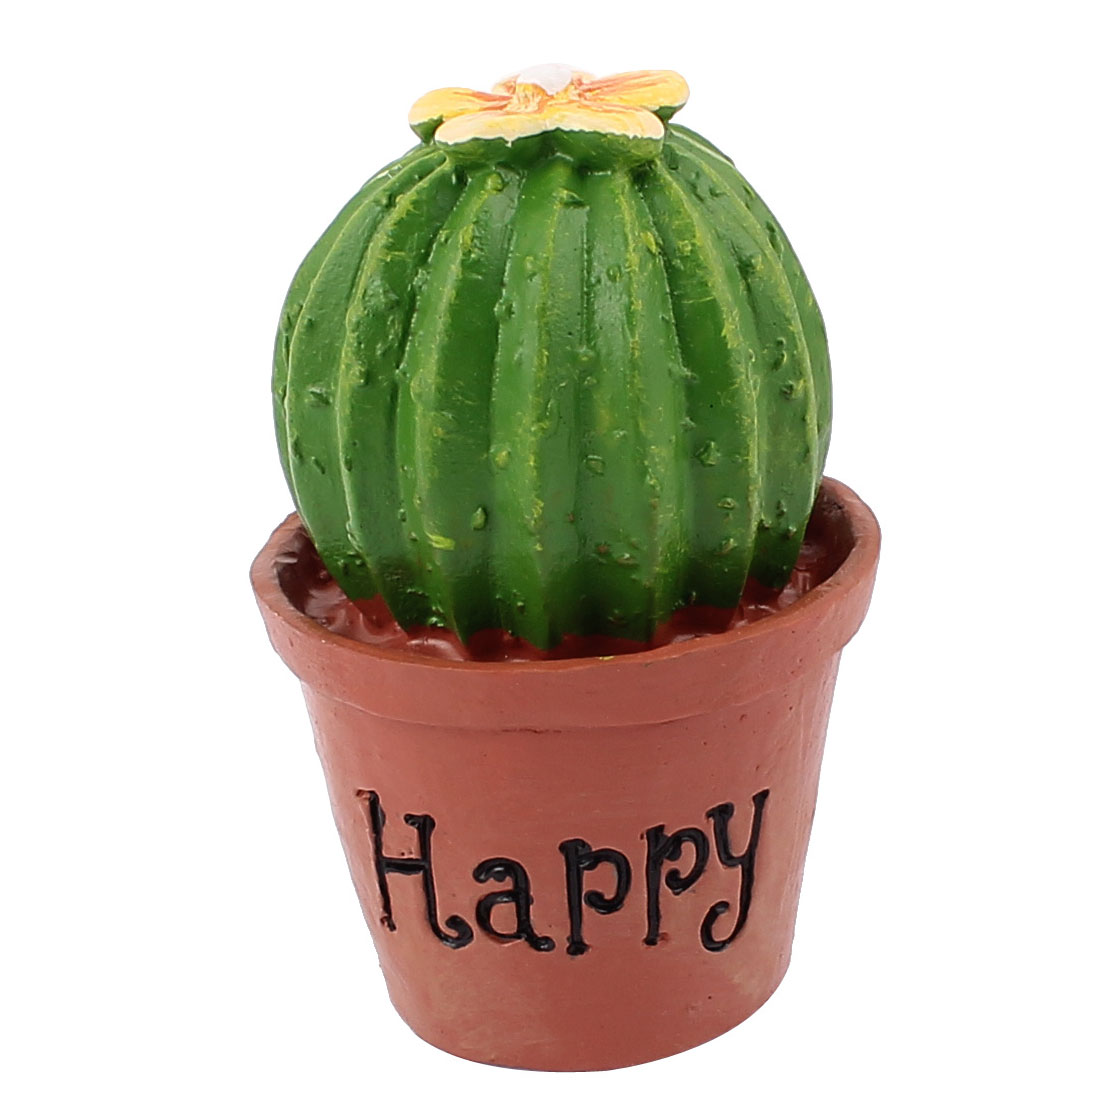 Cactus Planting Pots Unique Bargains Home Desk Decor Resin Simulative Ball Cactus Plant Pot Bonsai Green